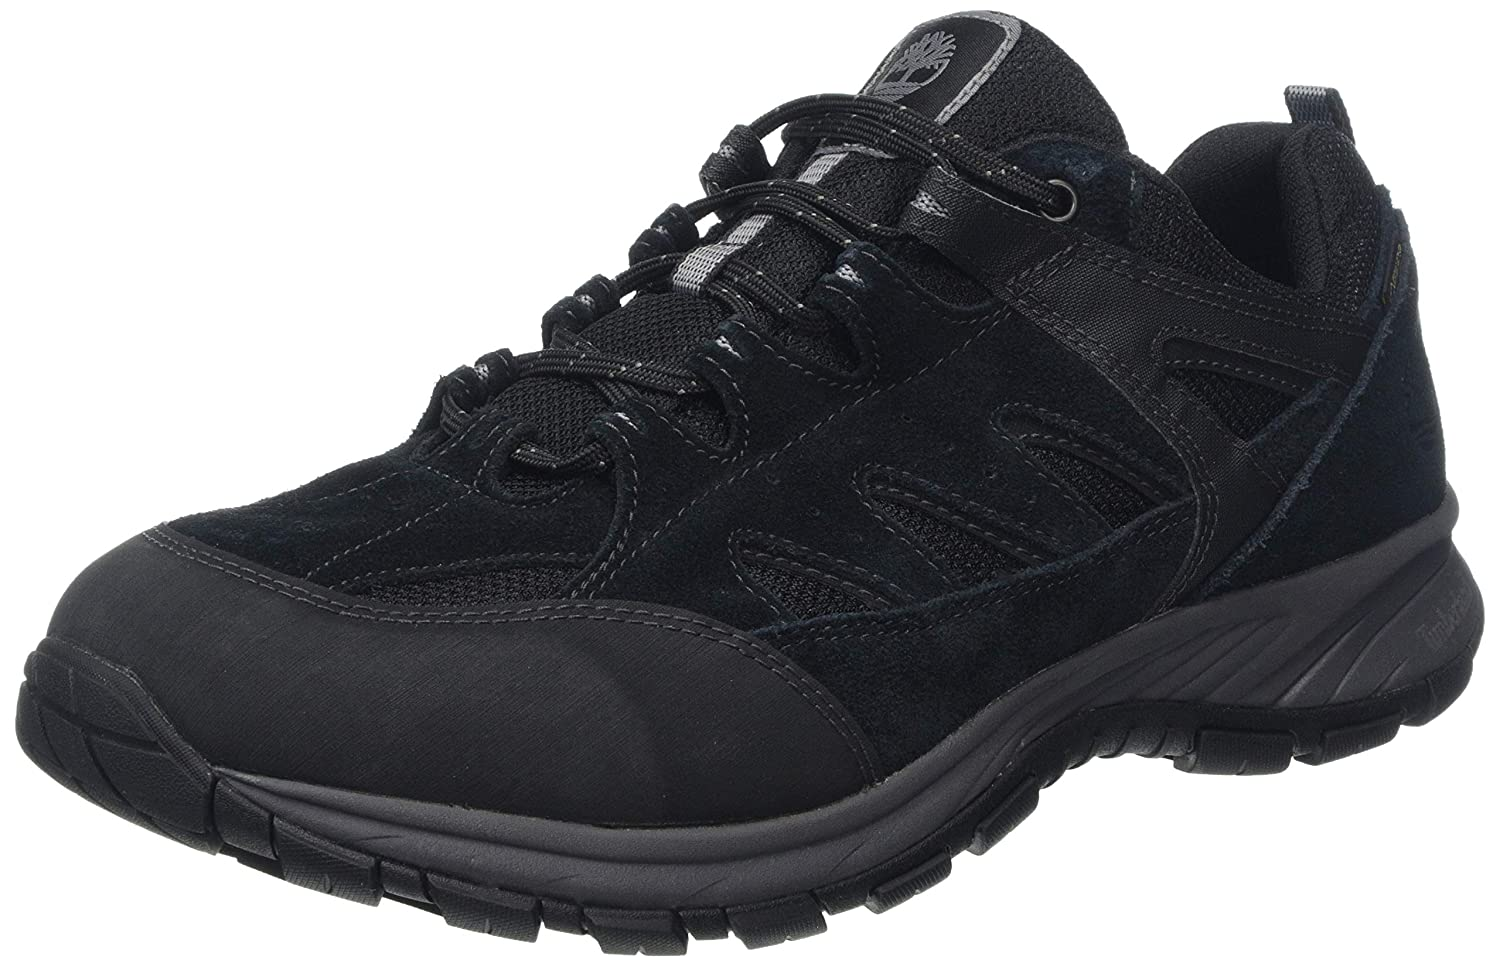 TALLA 44.5 EU. Timberland Sadler Pass Waterproof Low Goretex (Wide Fit), Zapatillas para Hombre